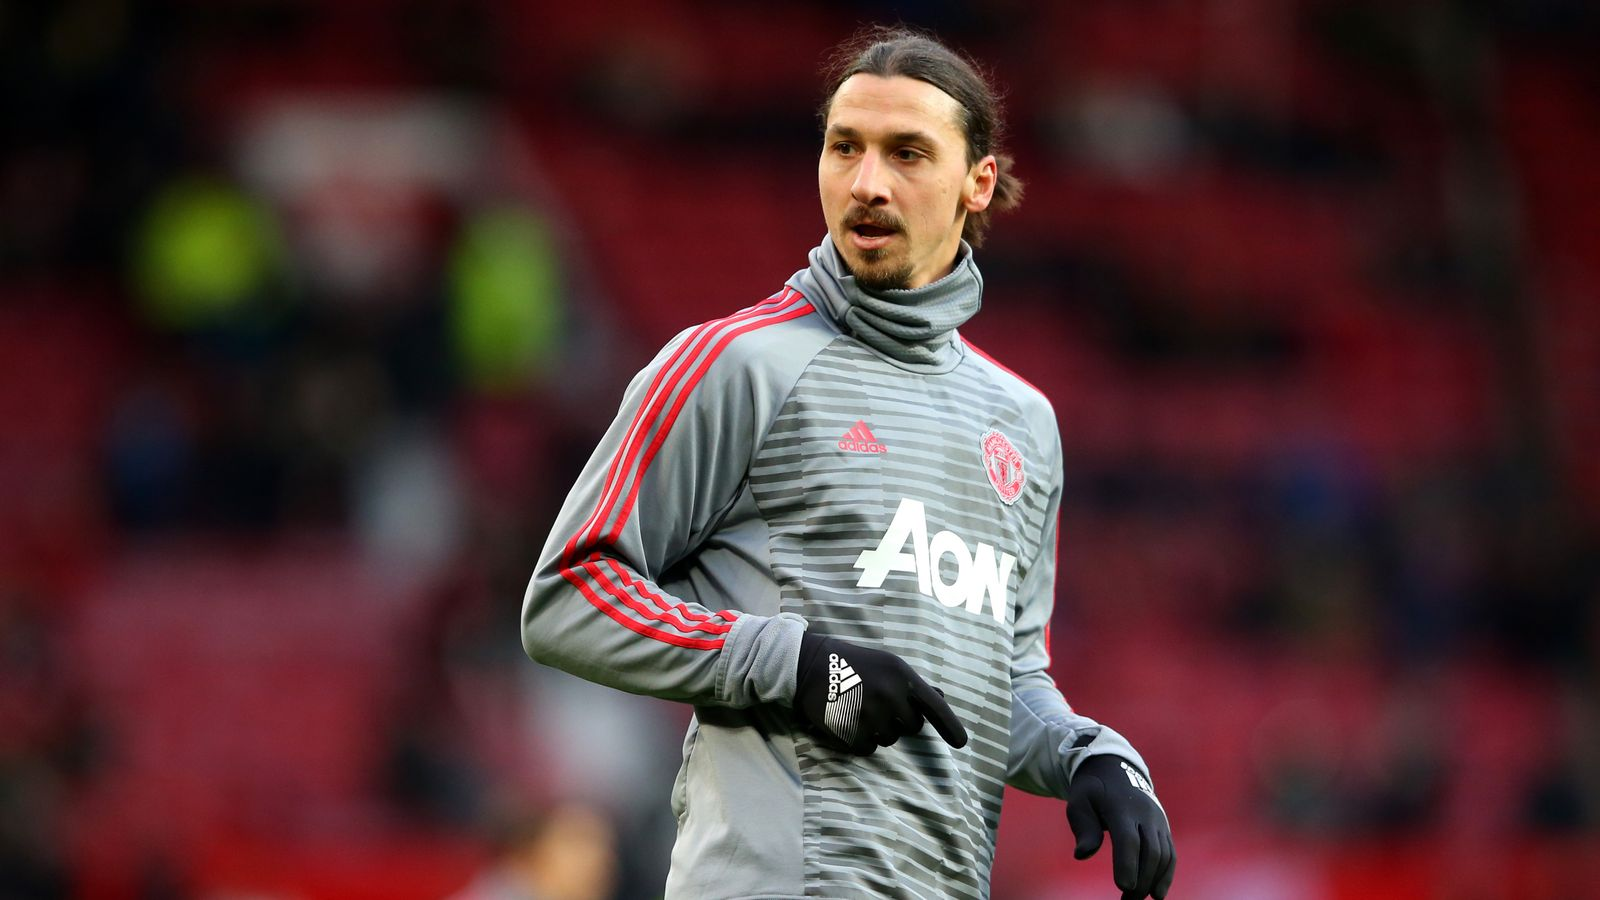 ibrahimovic - photo #15